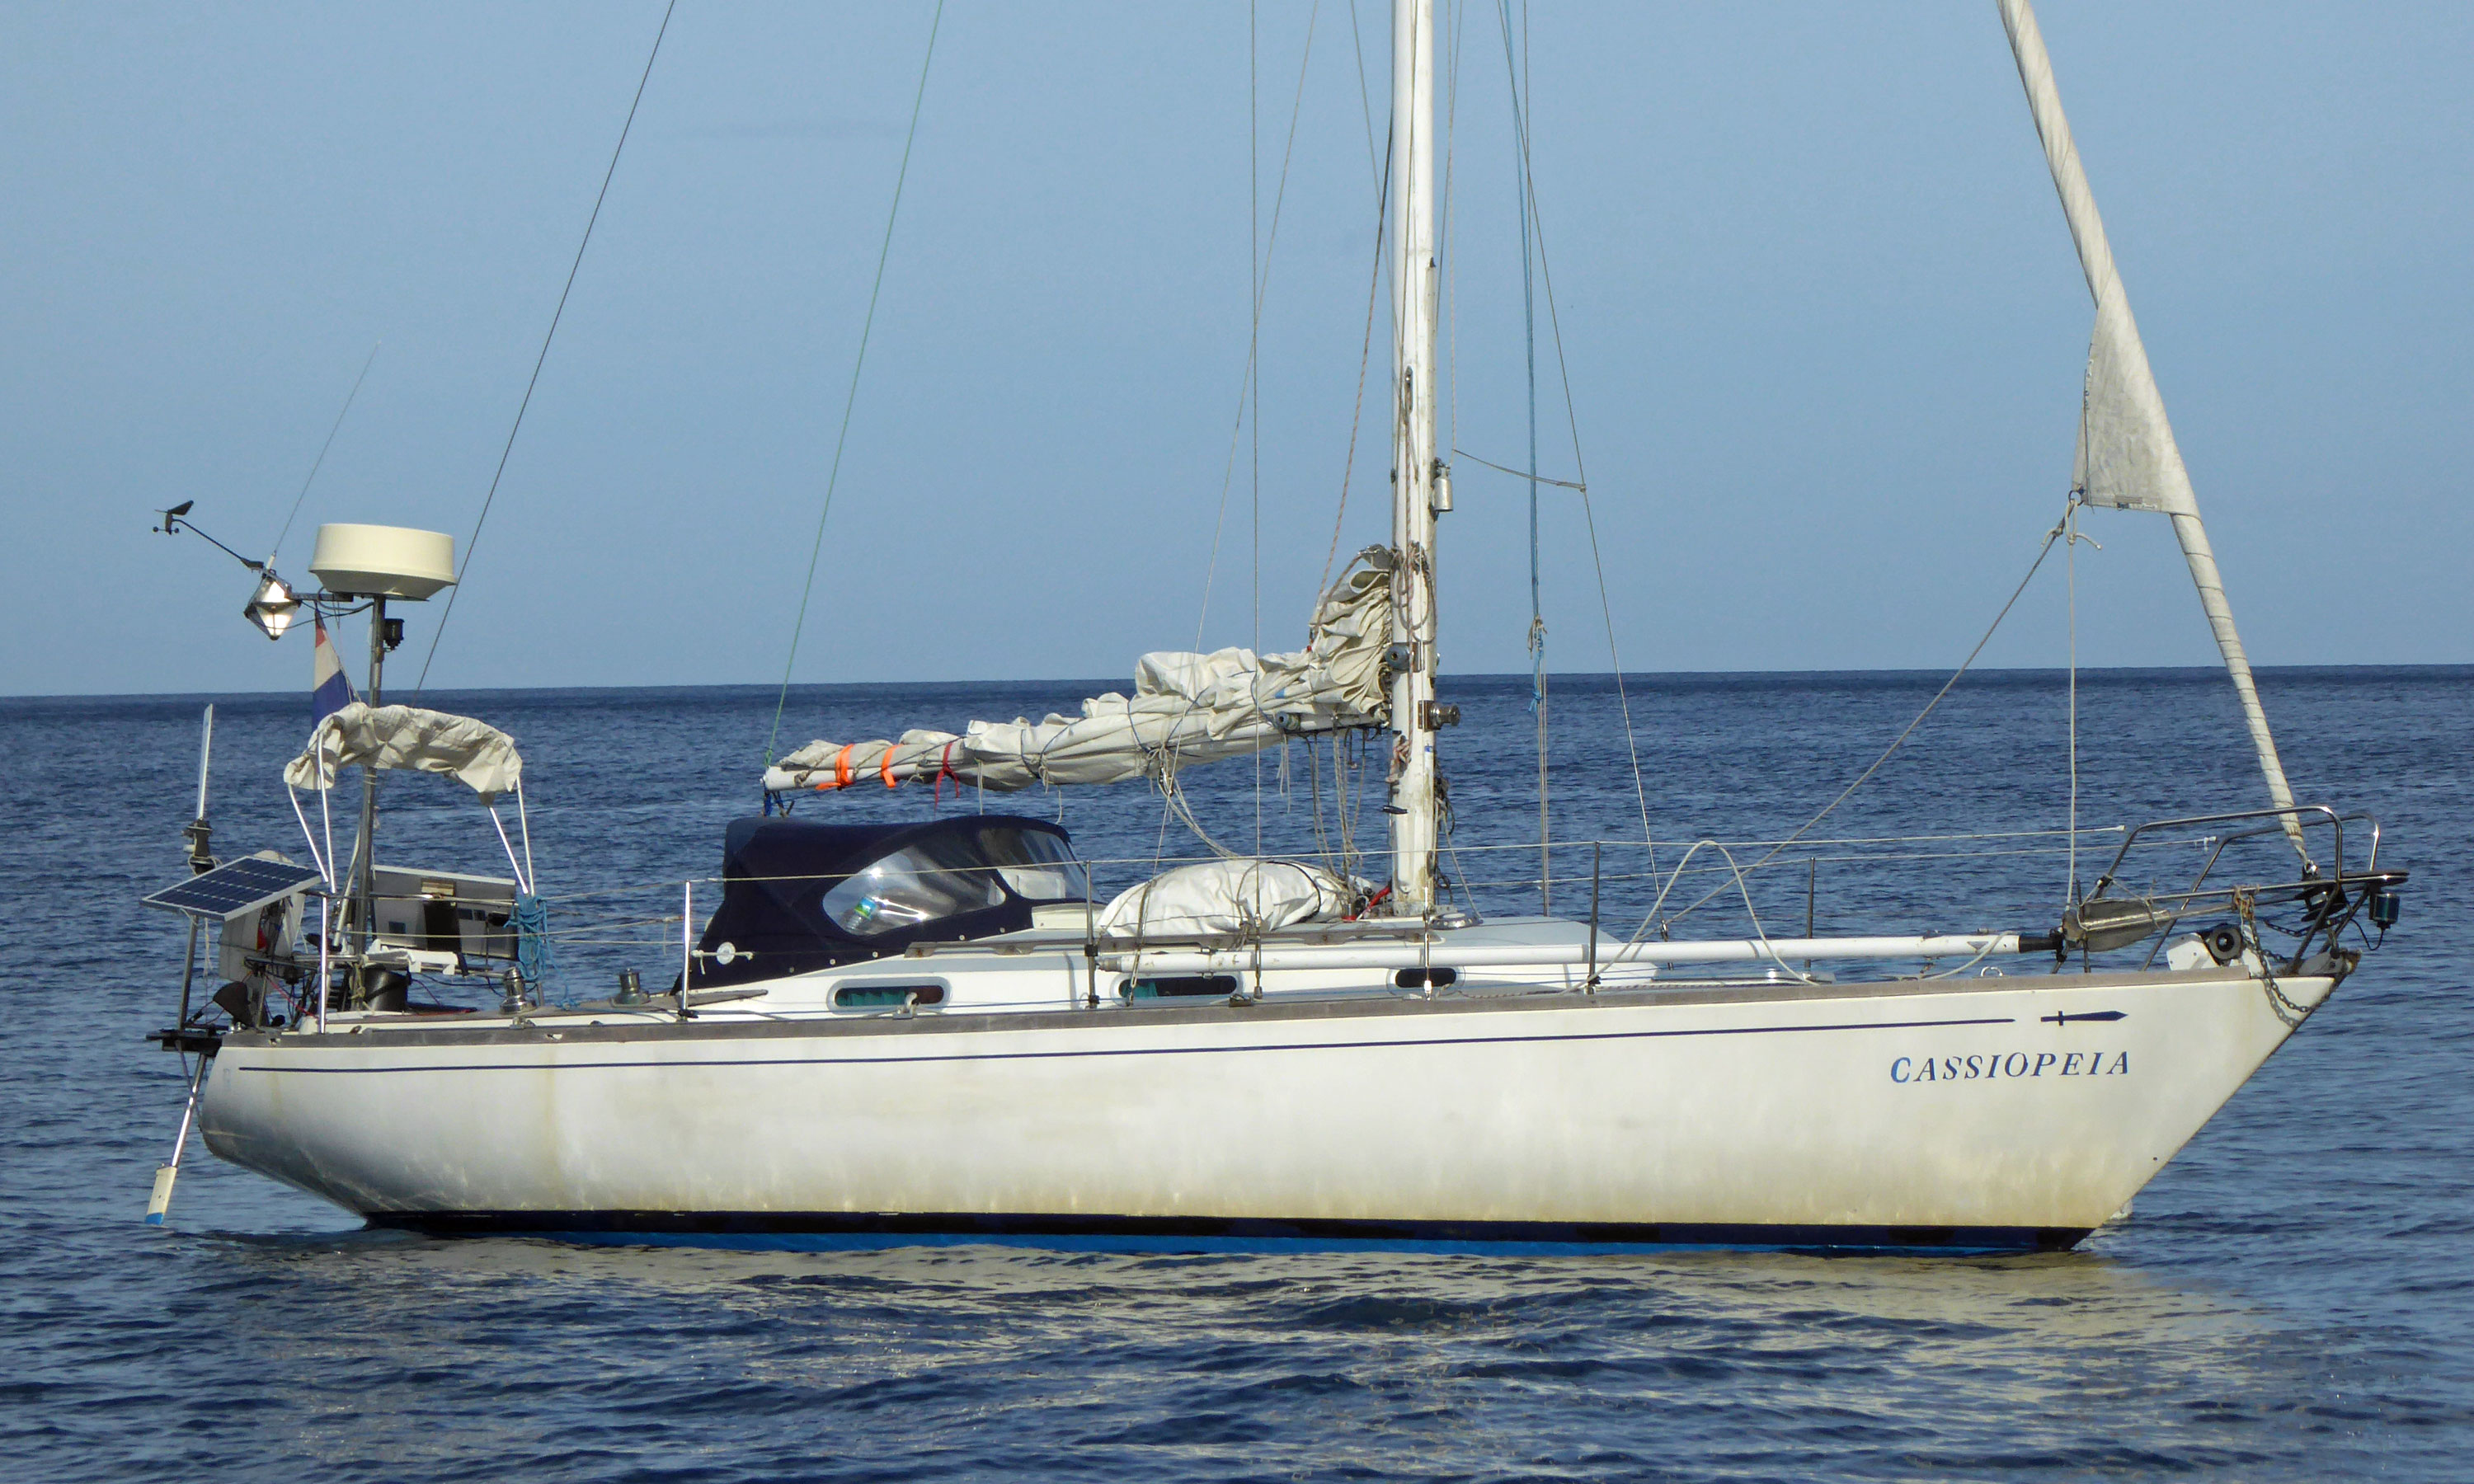 A Gladiateur 33 sailboat